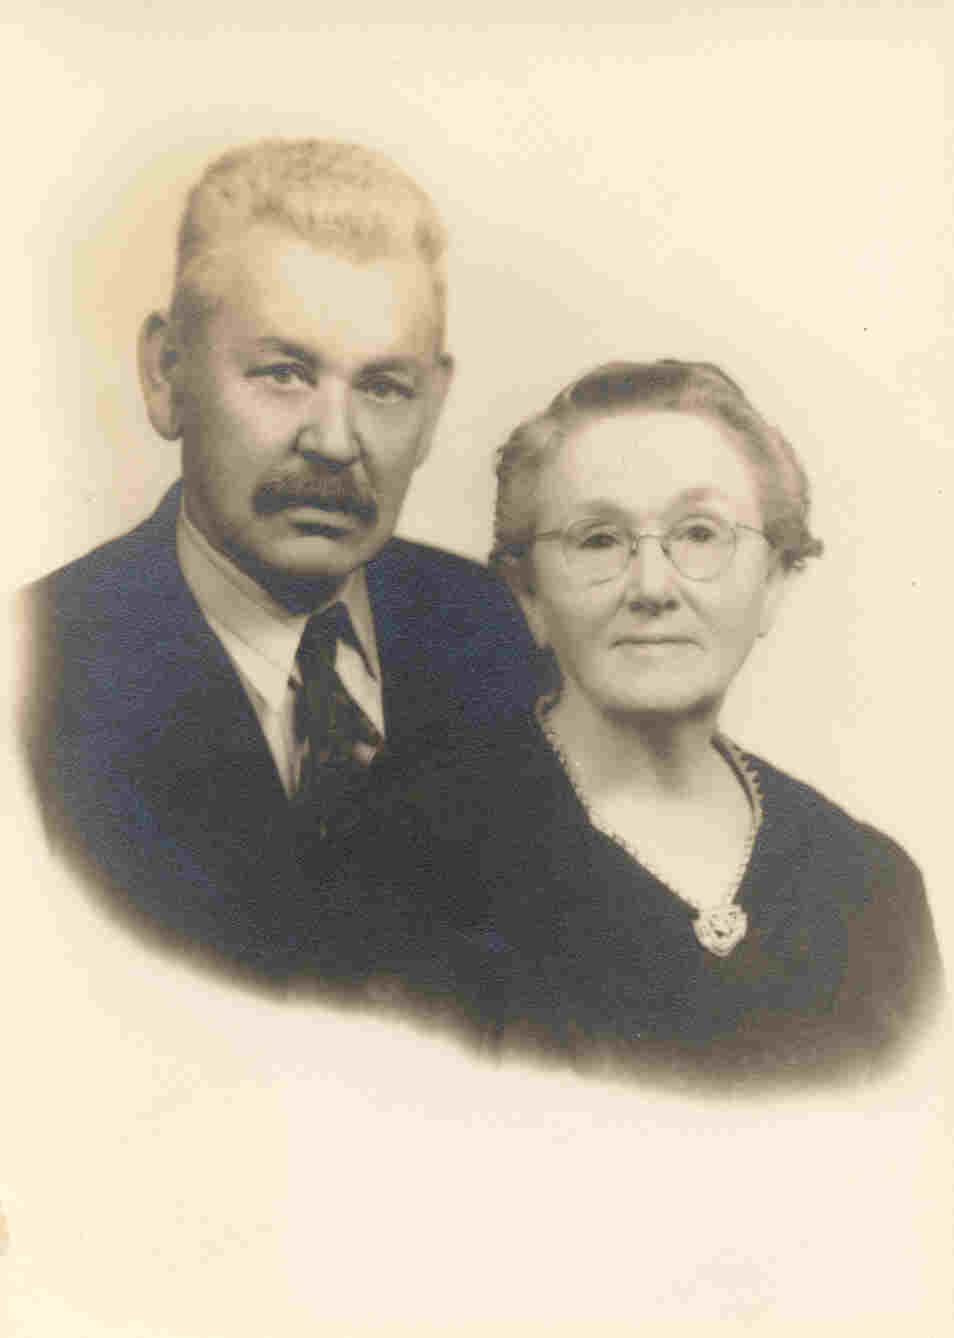 John Abijah Davis and Ada Lee Burleson Davis in 1940